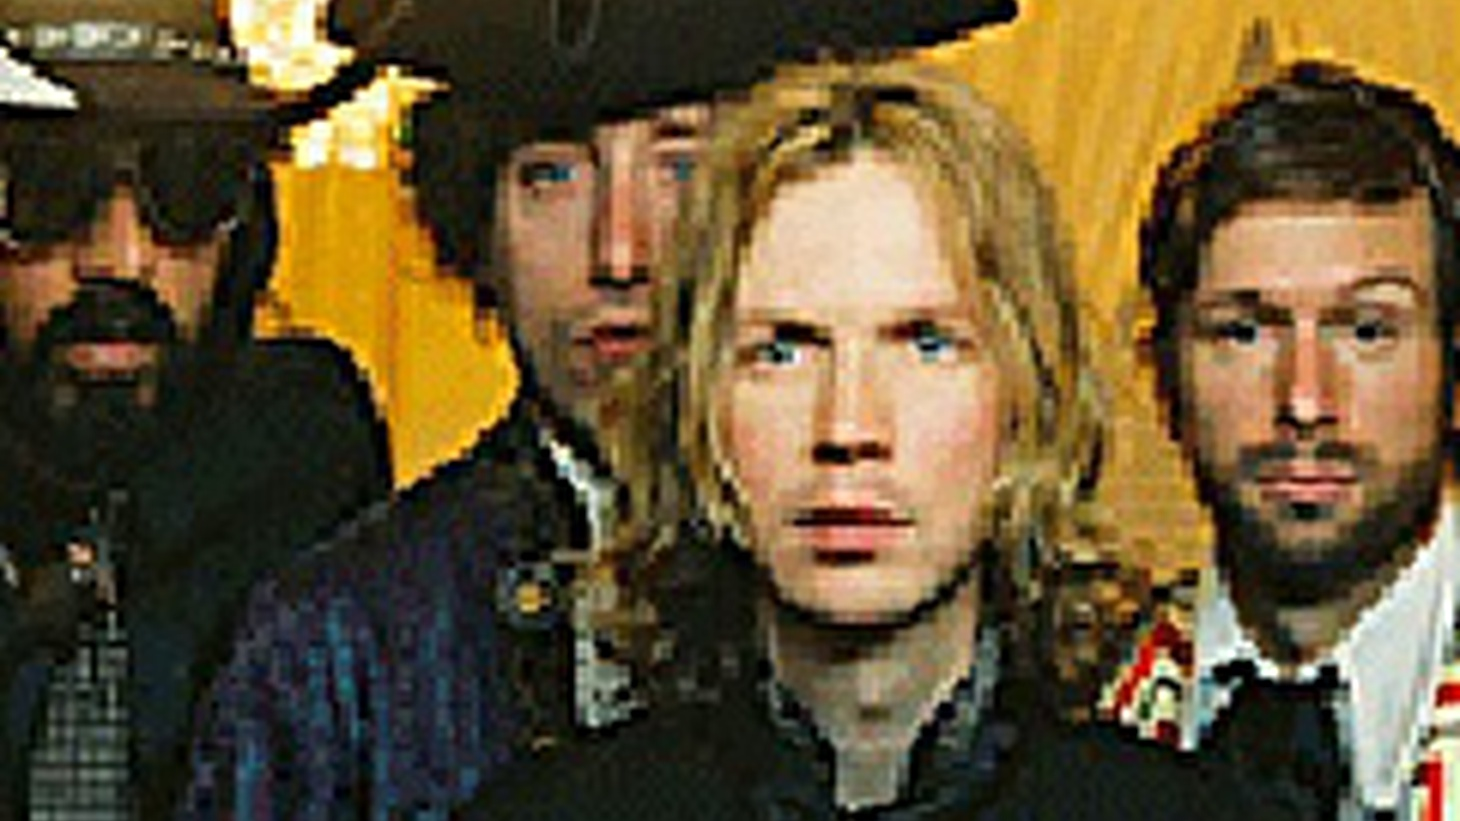 L.A.'s finest, Beck, brings a band to perform songs from The Information on Morning Becomes Eclectic at 11:15am.